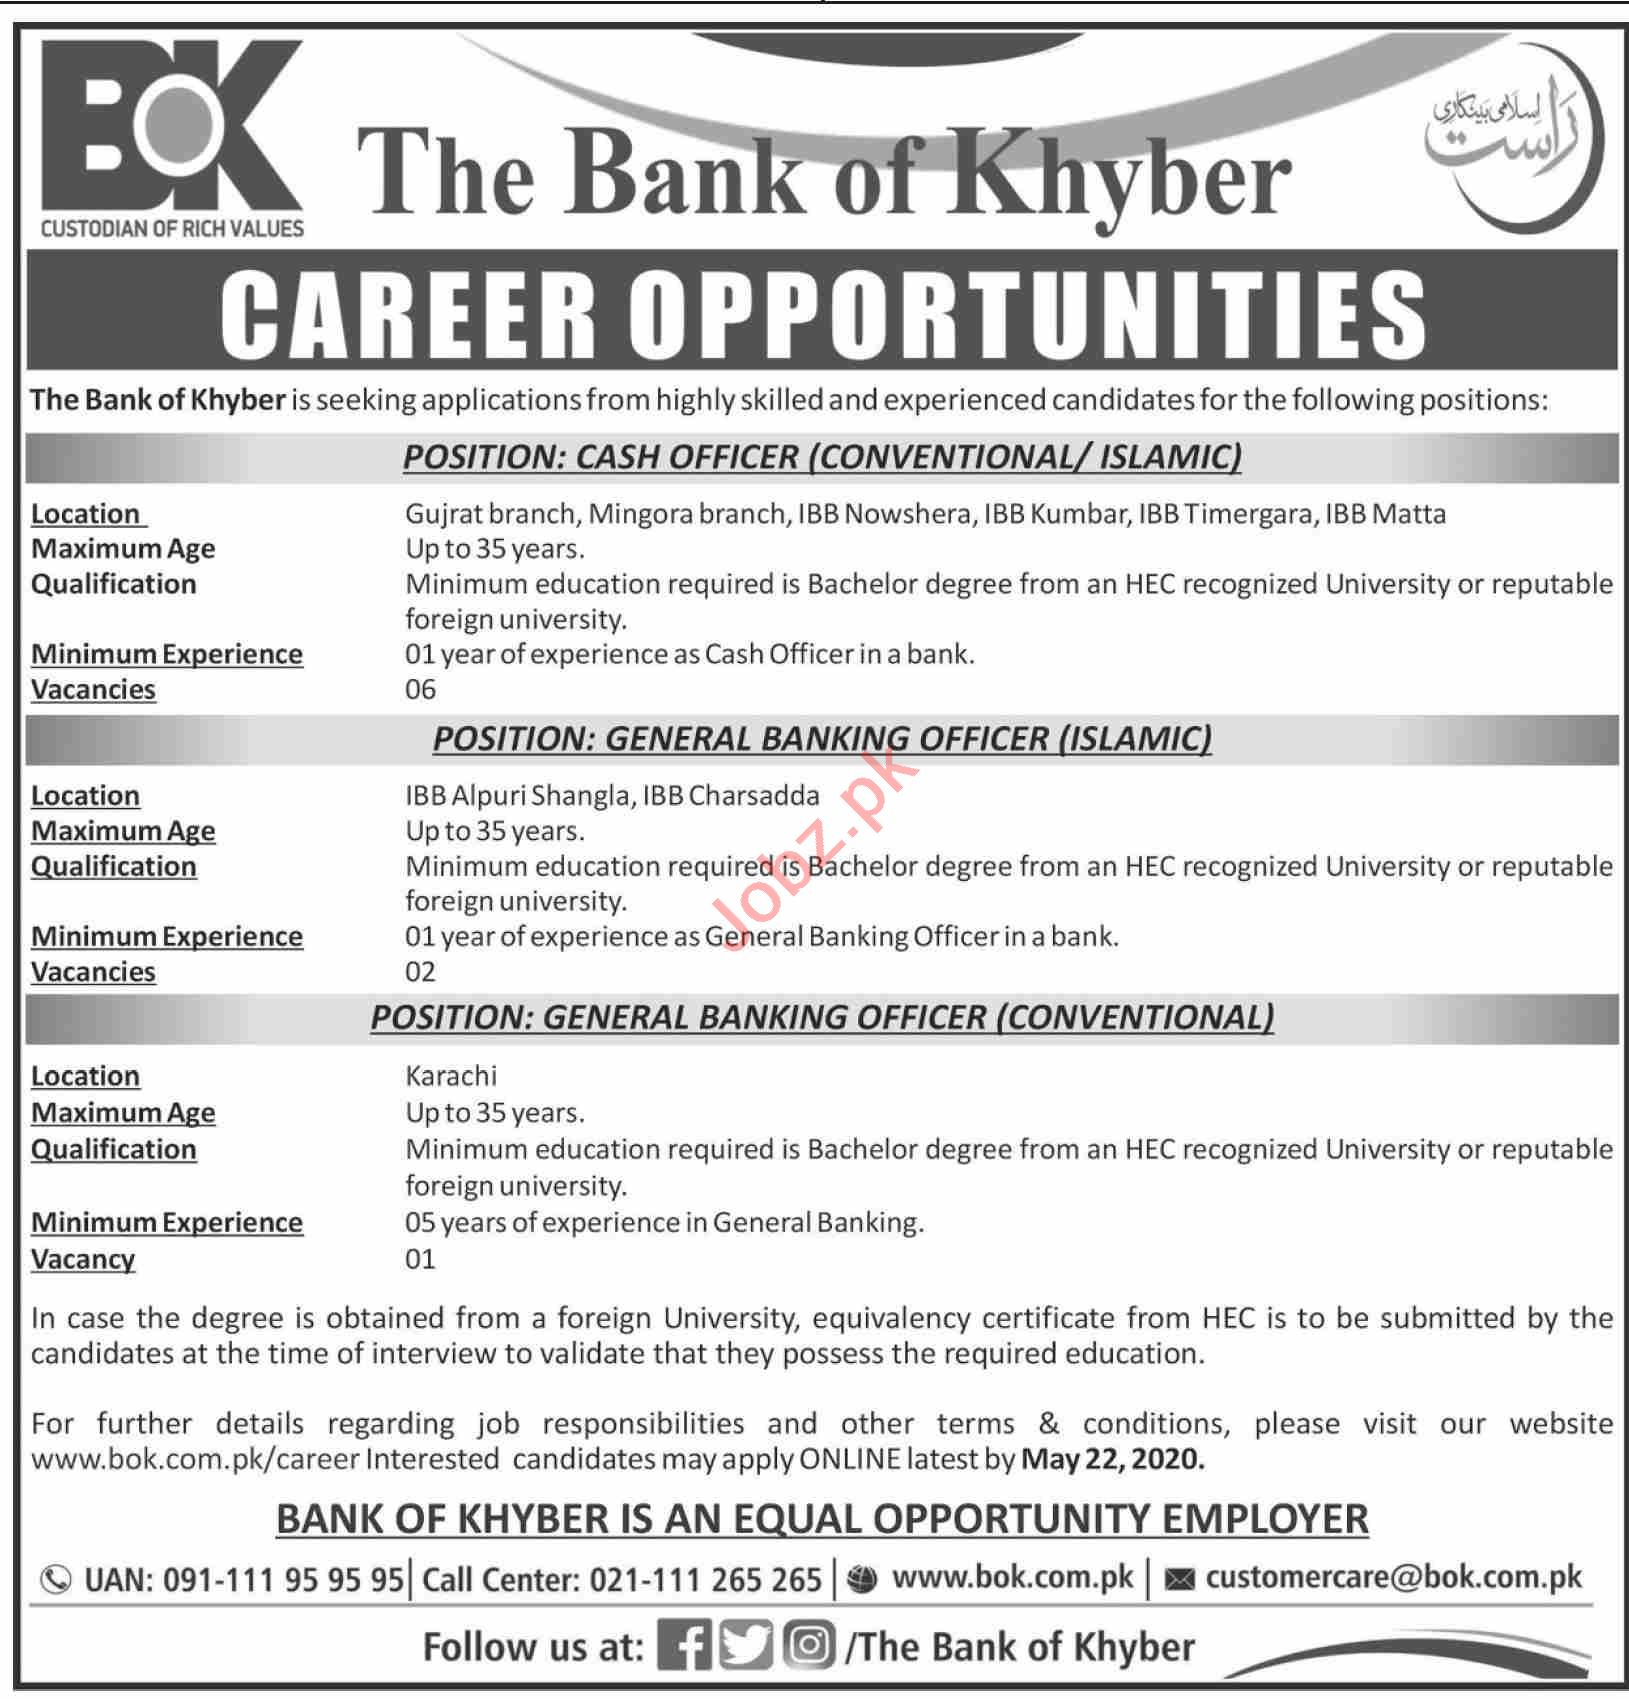 The Bank of Khyber BOK Jobs 2020 for Cash Officer